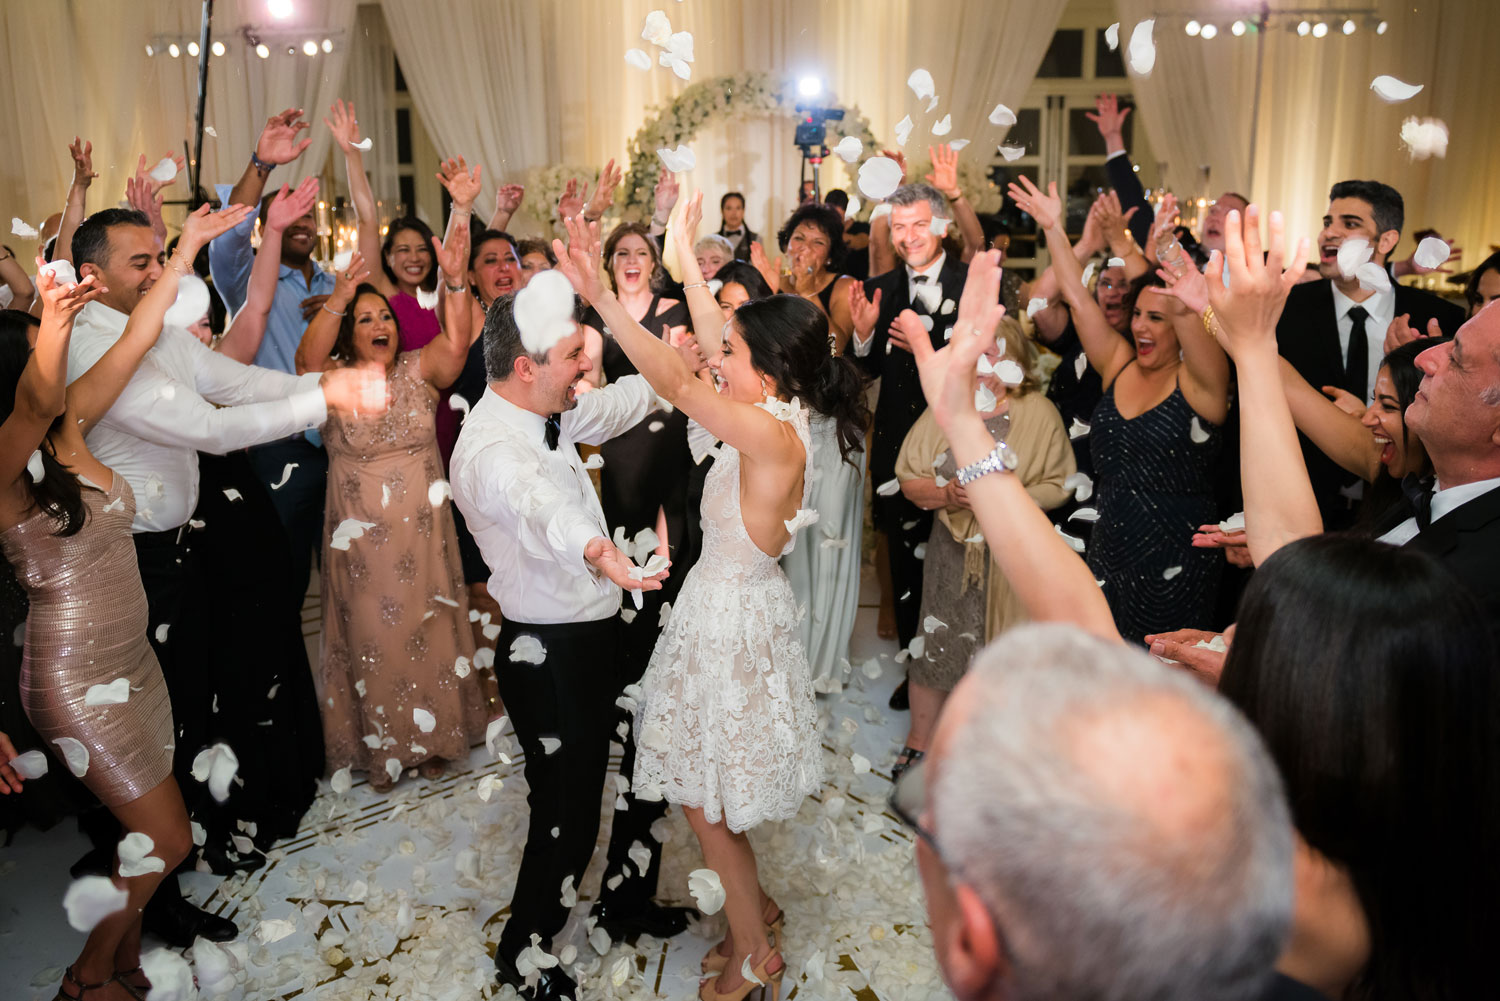 candid shot of wedding guests dancing and throwing rose petals at bride and groom